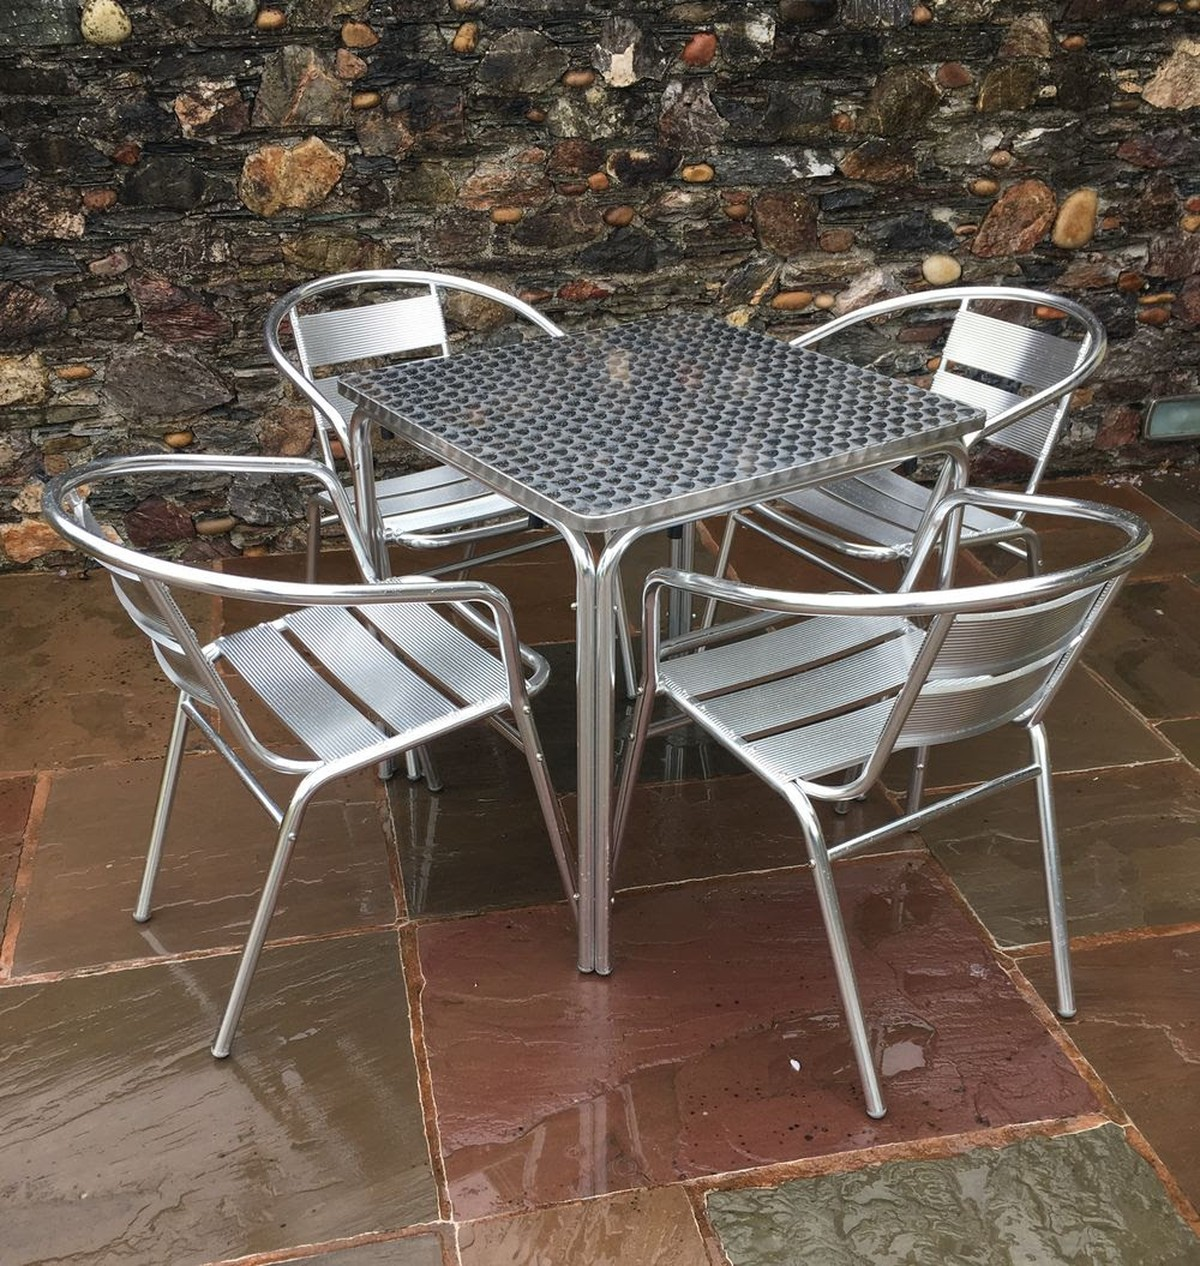 secondhand chairs and tables outdoor furniture 3 sets aluminium